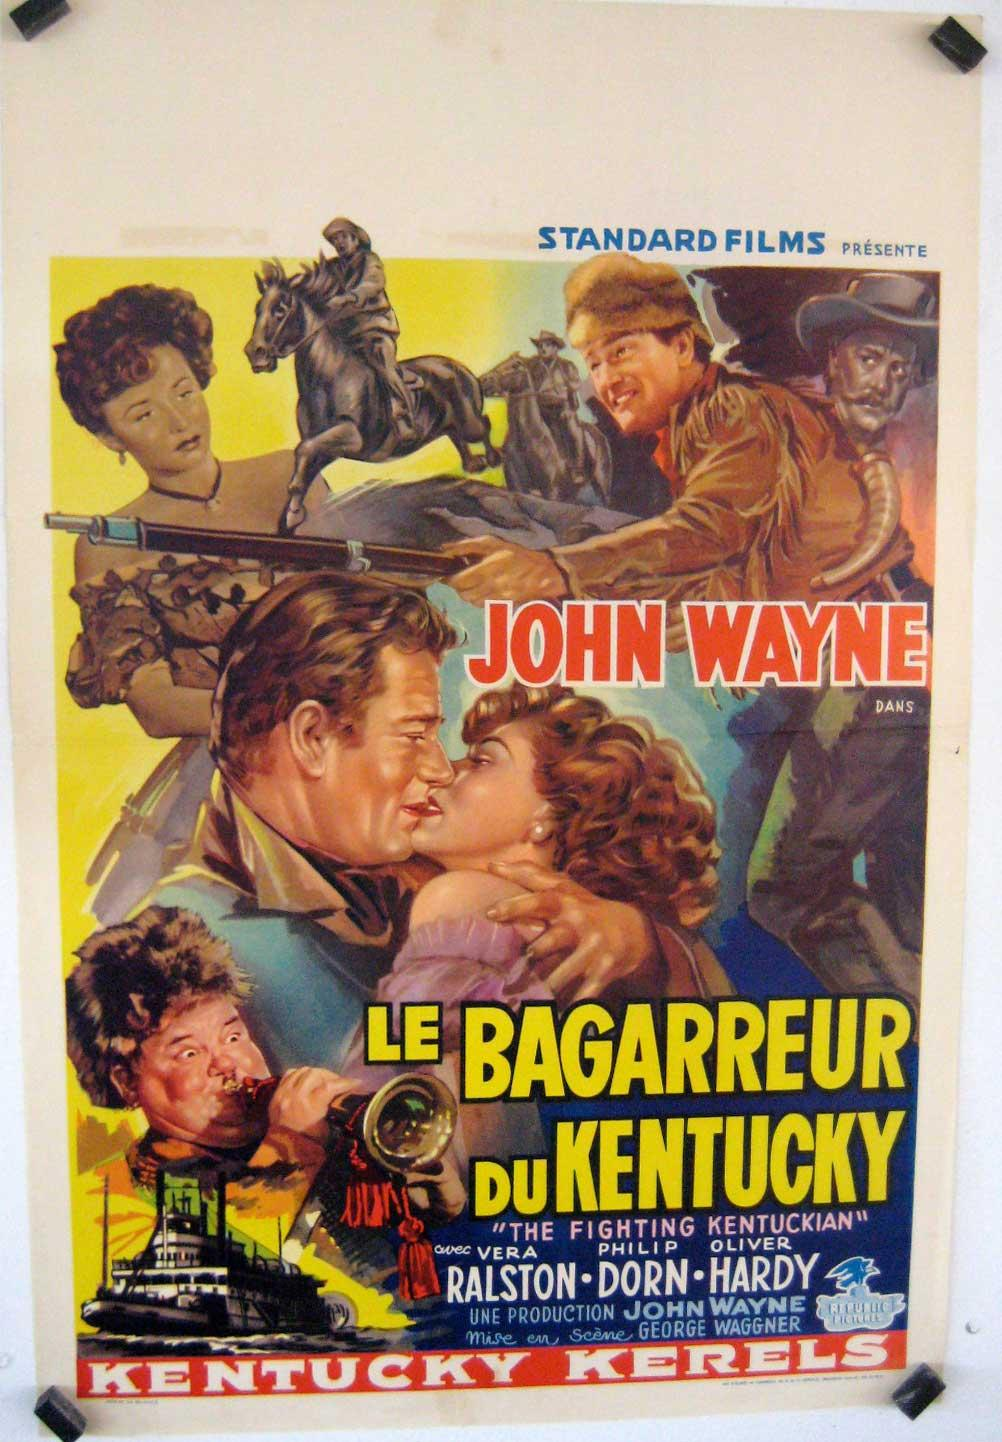 THE FIGHTING KENTUCKIAN MOVIE POSTER/BAGARREUR DU KENTUCKY, LE/POSTER